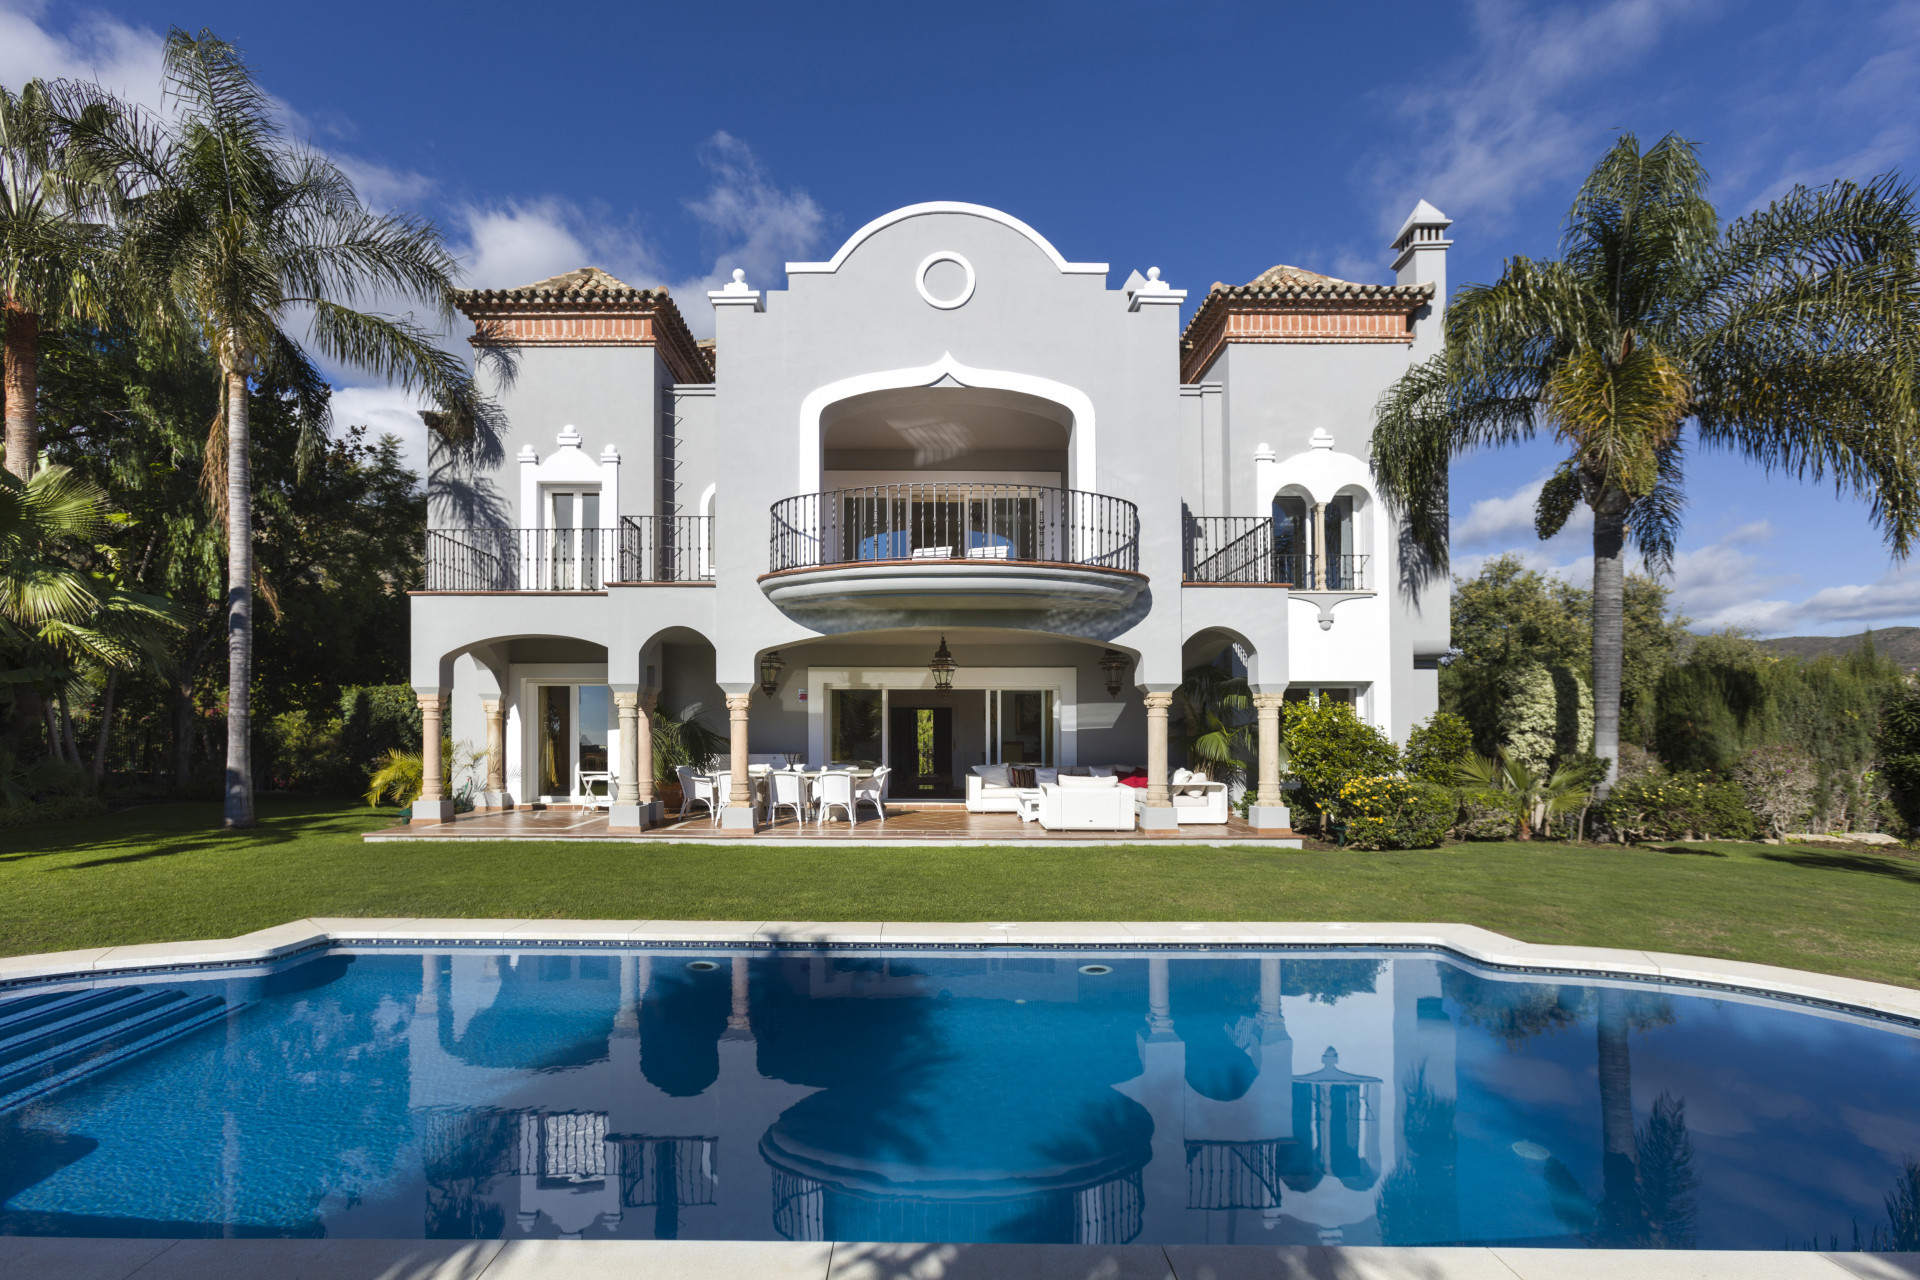 Stunning 5 bedroom villa with sea views in La Quinta, Benahavis